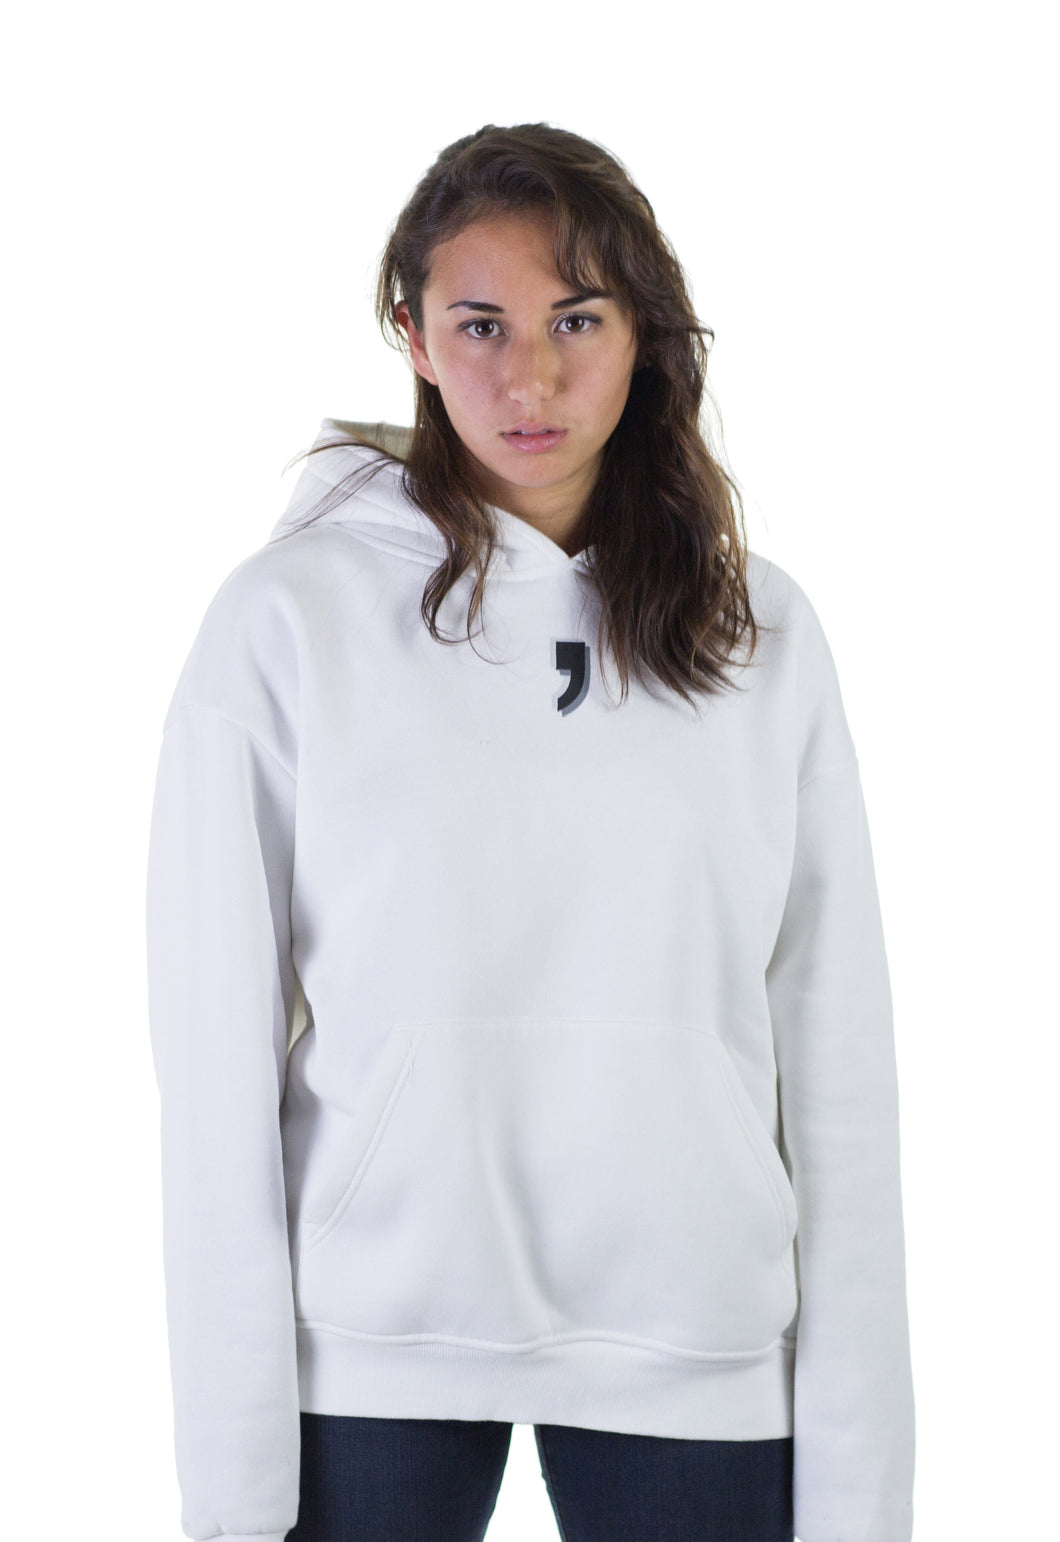 Hoodie on Woman White